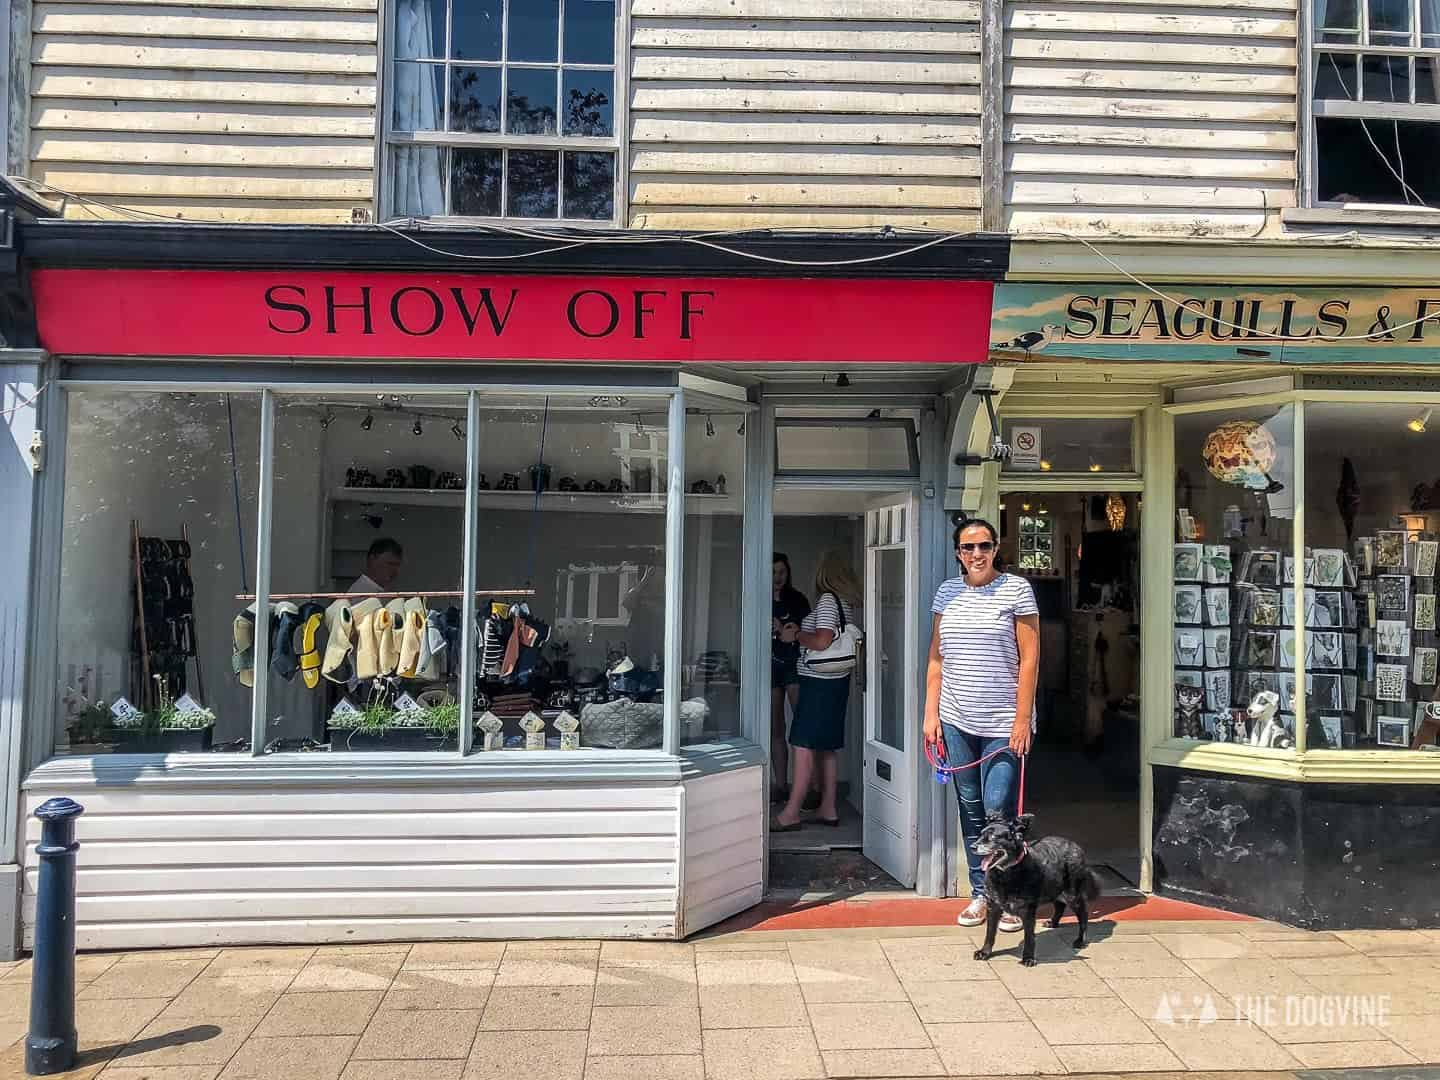 Dogs Day Out With Fetch & Follow On Tour In Dog-Friendly Whitstable 41